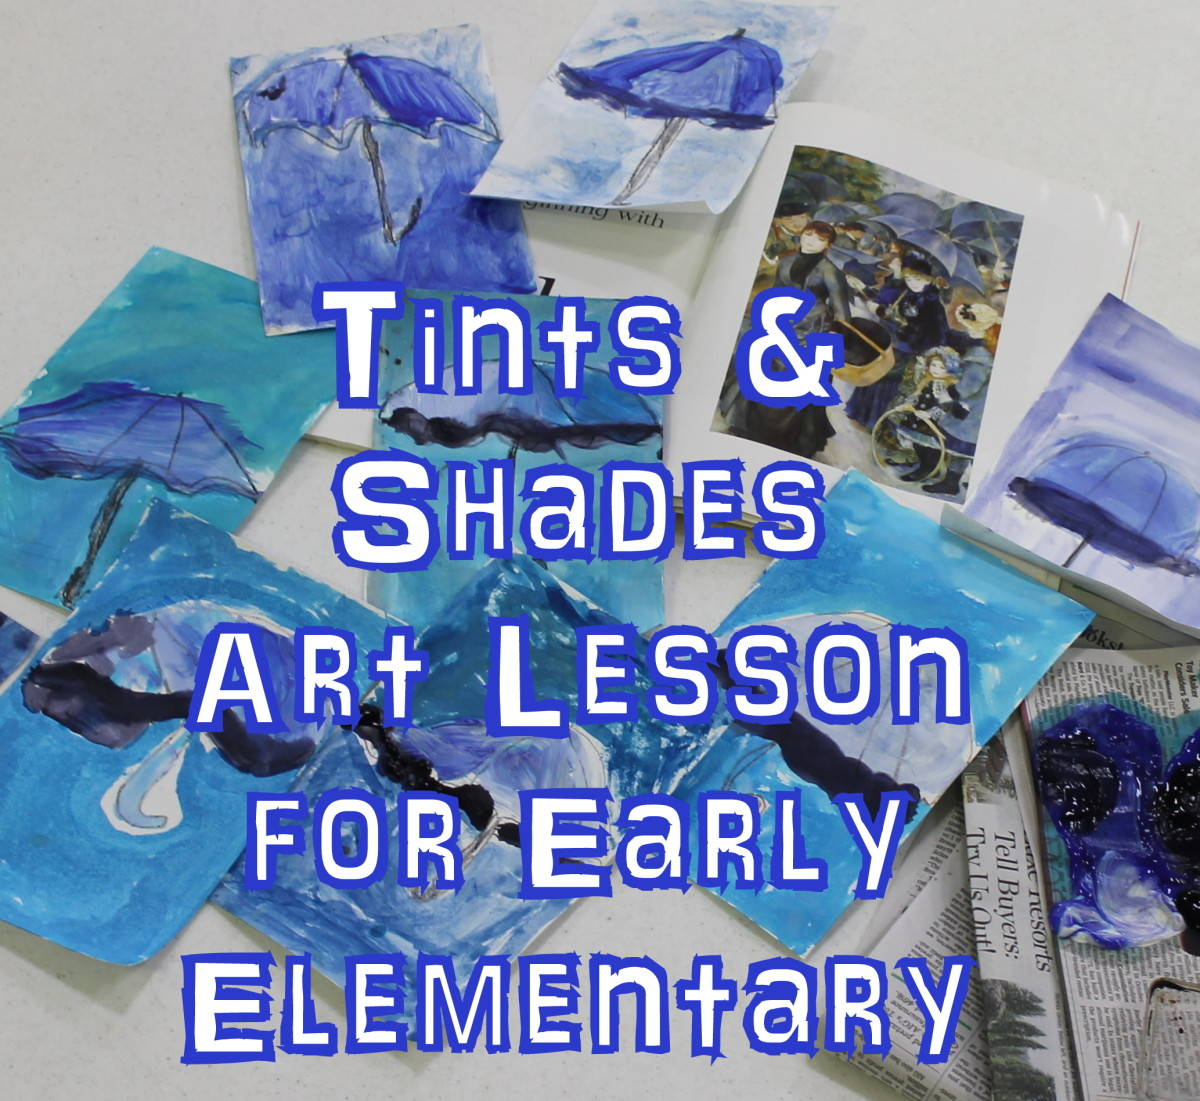 Tints and Shades & Pierre-Auguste Renoir Elementary Art Lesson